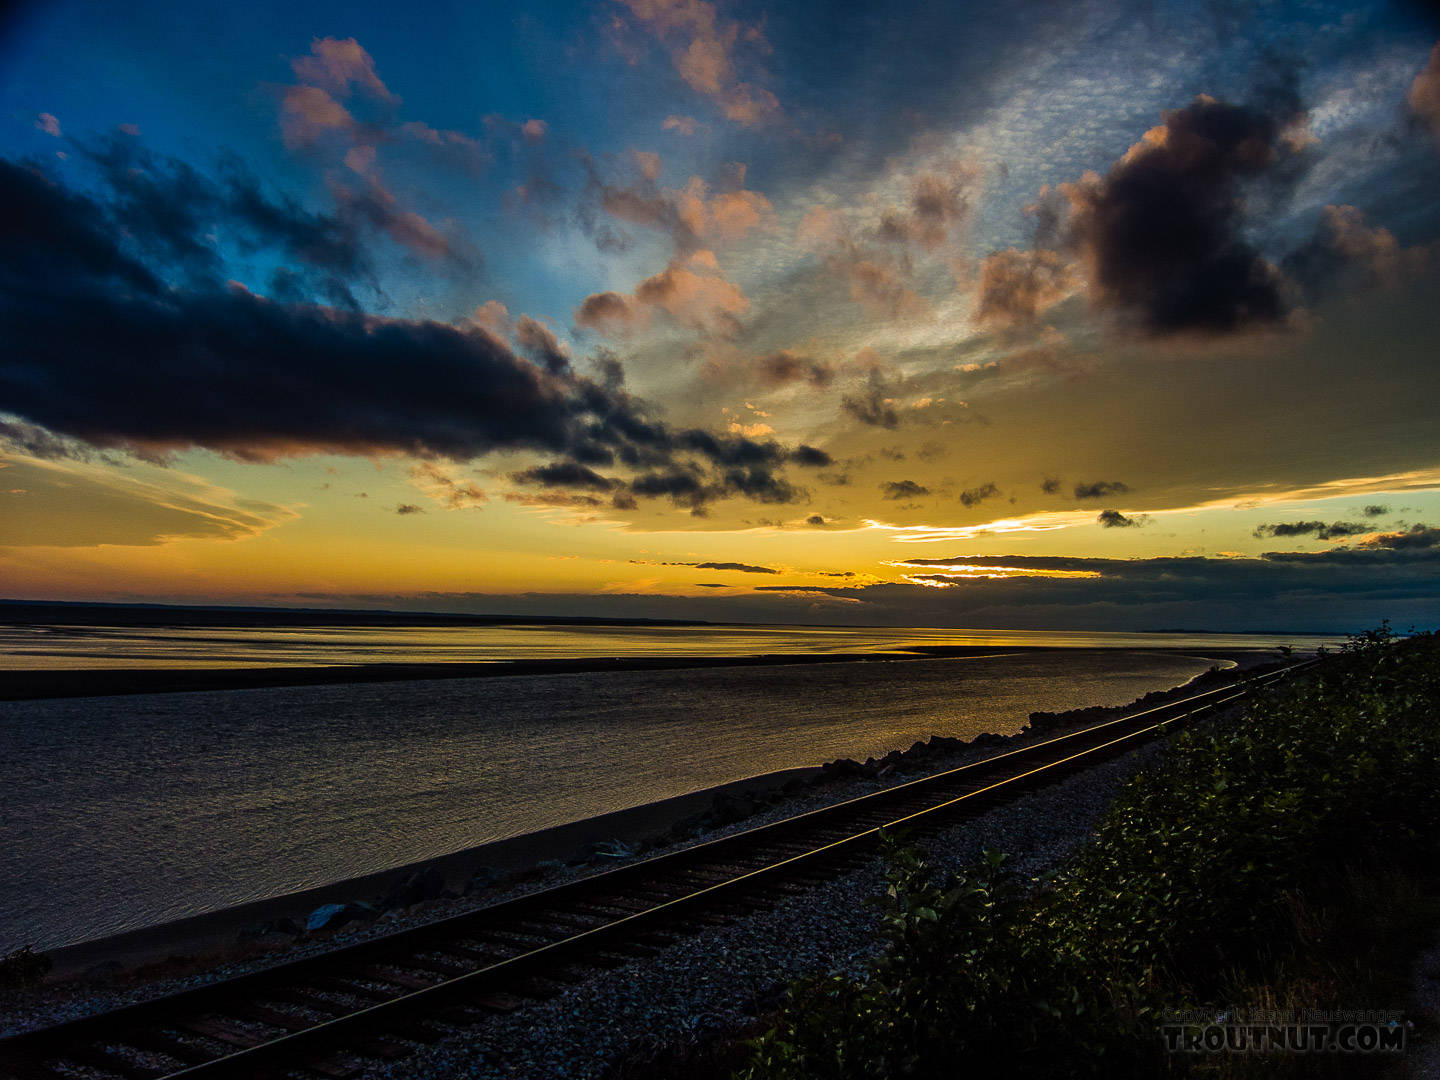 Railroad along the Turnagain Arm of Cook Inlet From Turnagain Arm of Cook Inlet in Alaska.